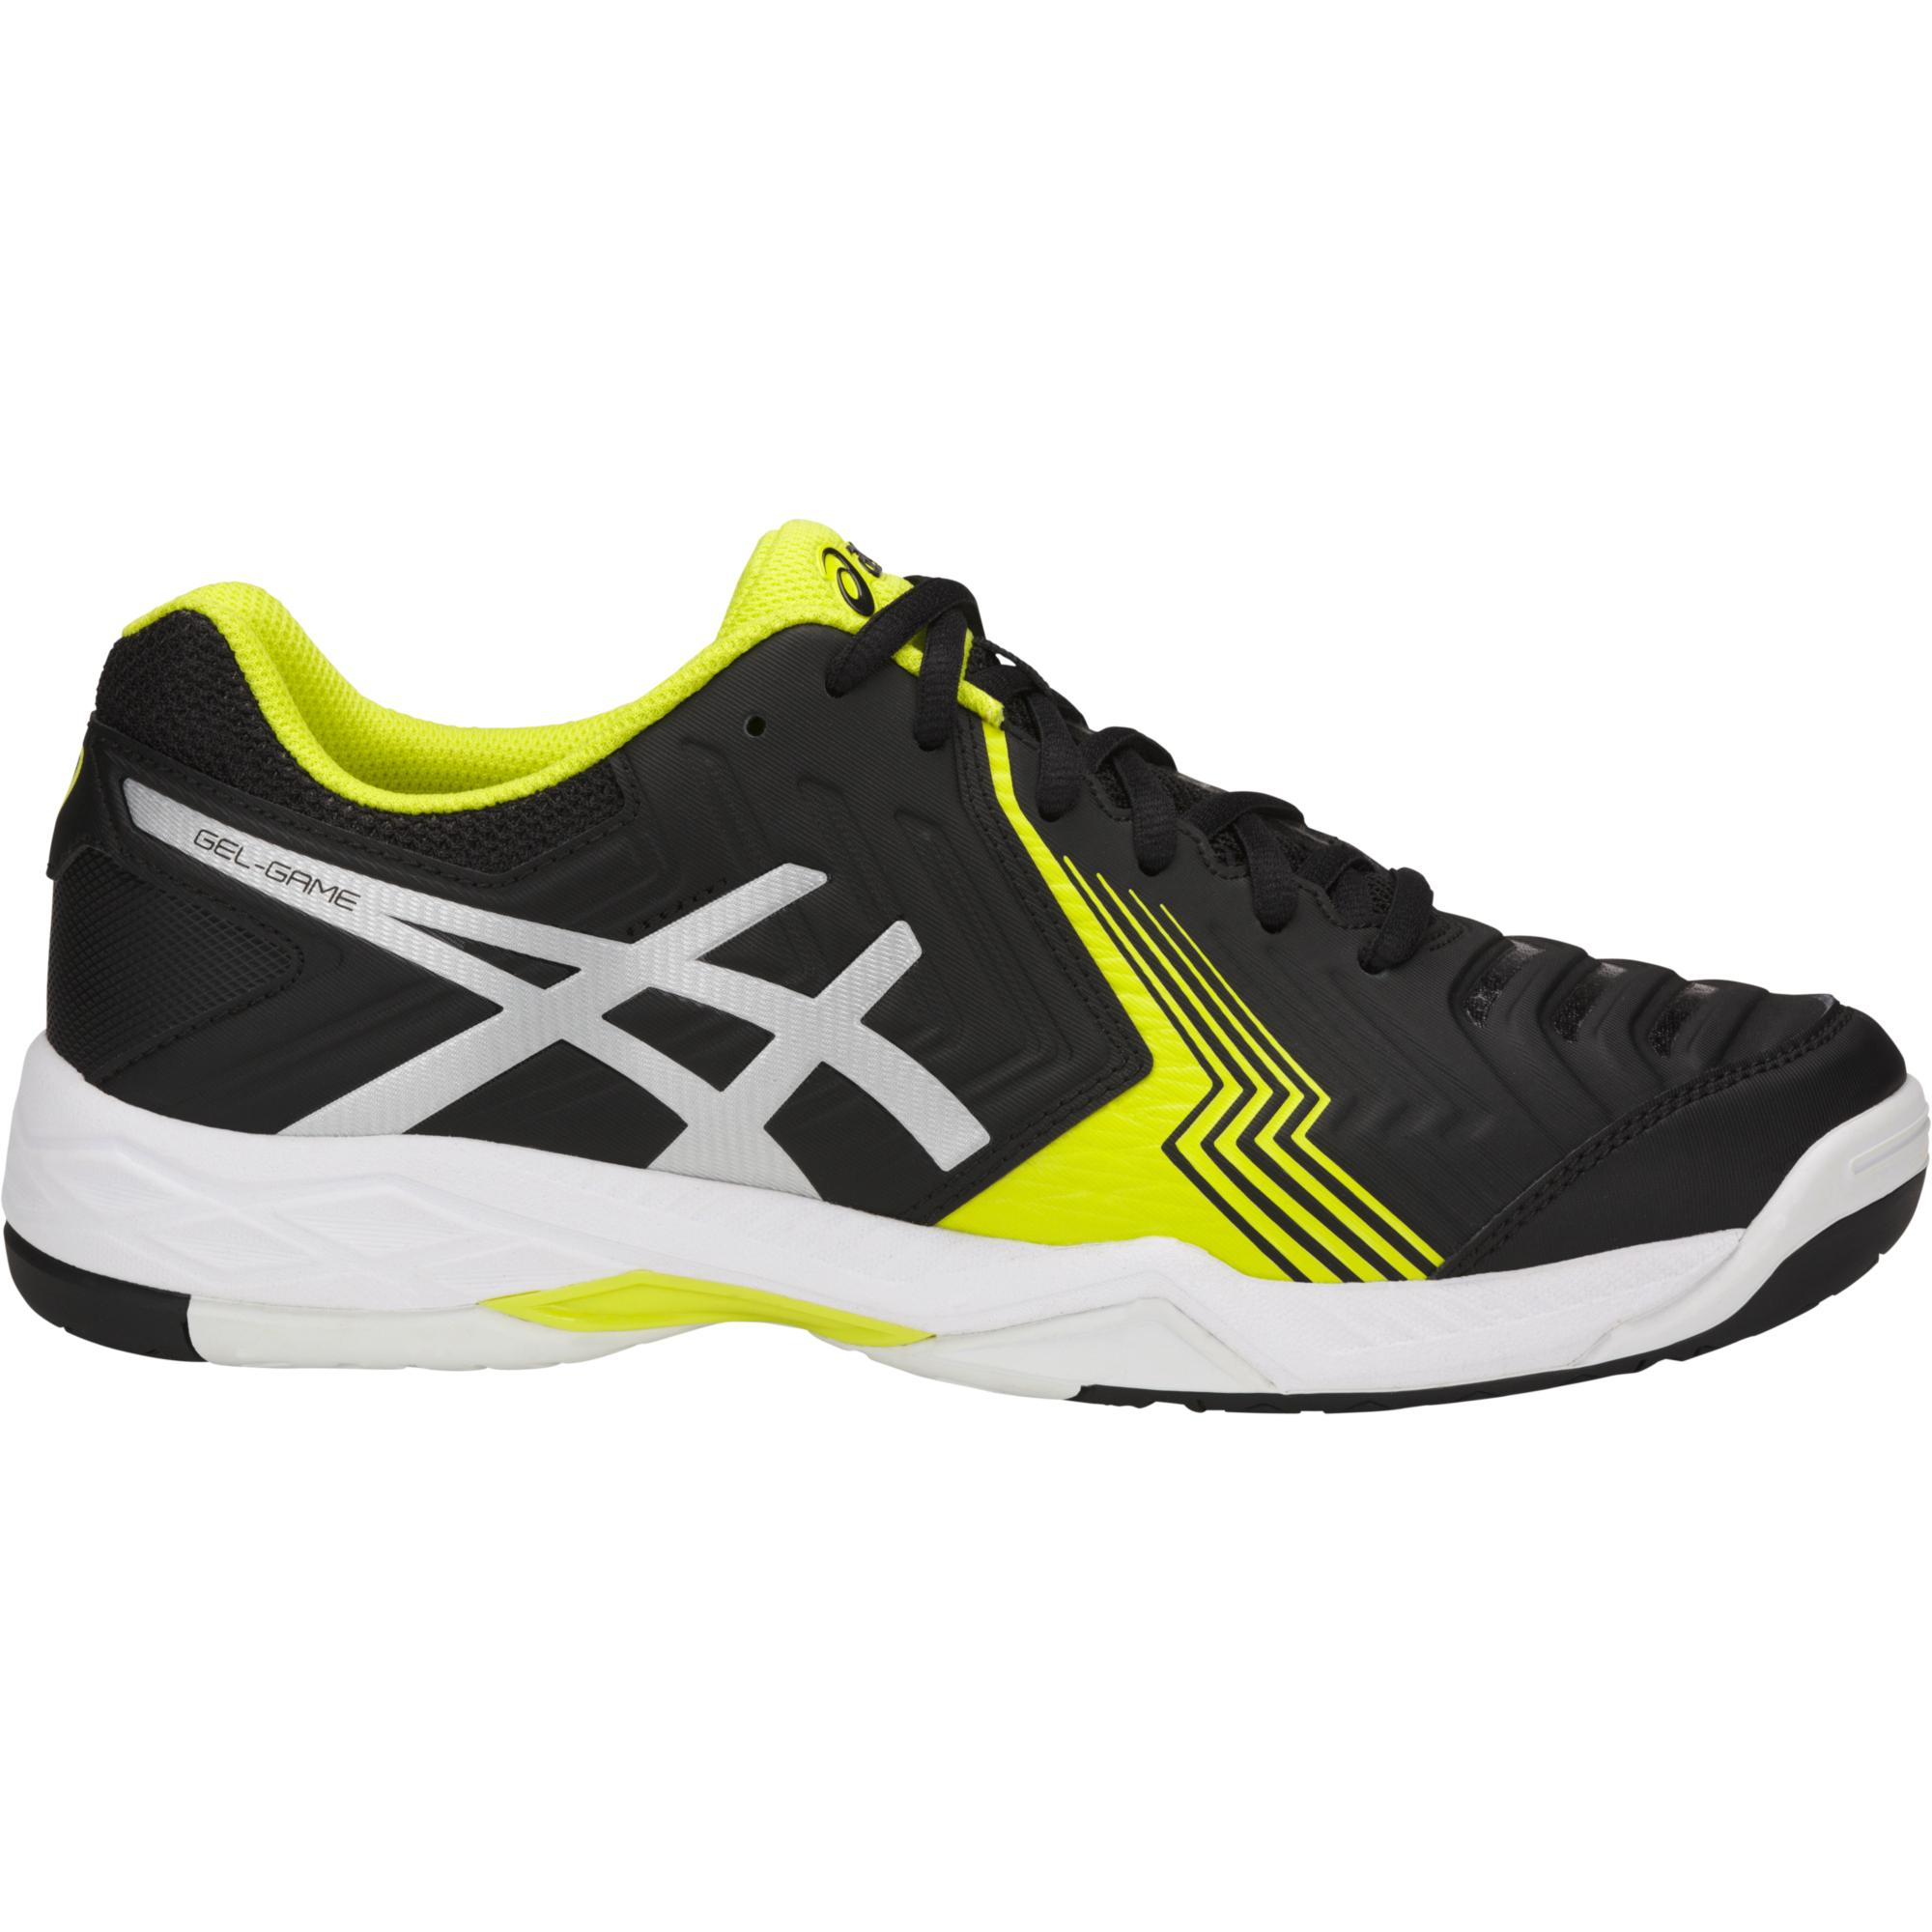 Asics Mens GEL-Game 6 Tennis Shoes - Black/Silver/Sulphur Spring